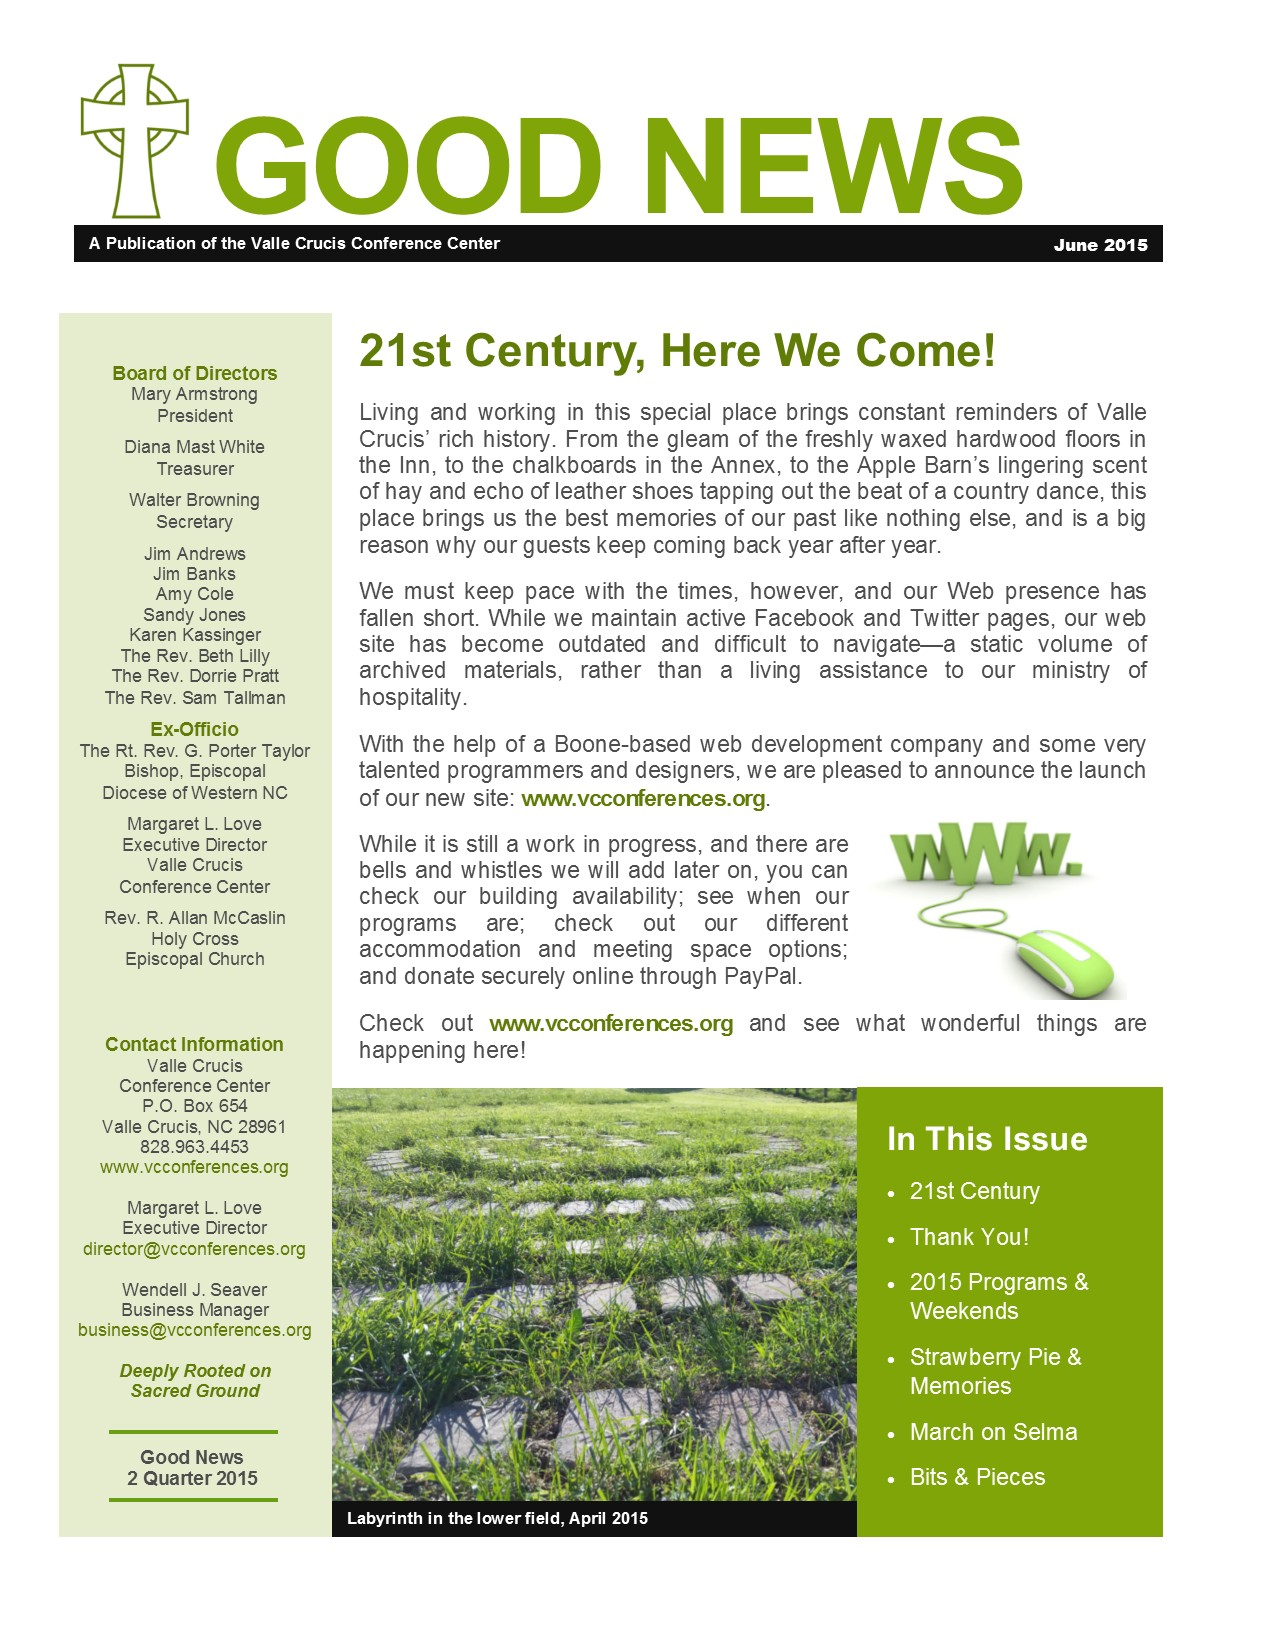 click here for the latest good news our quarterly newsletter the link will open in a new window